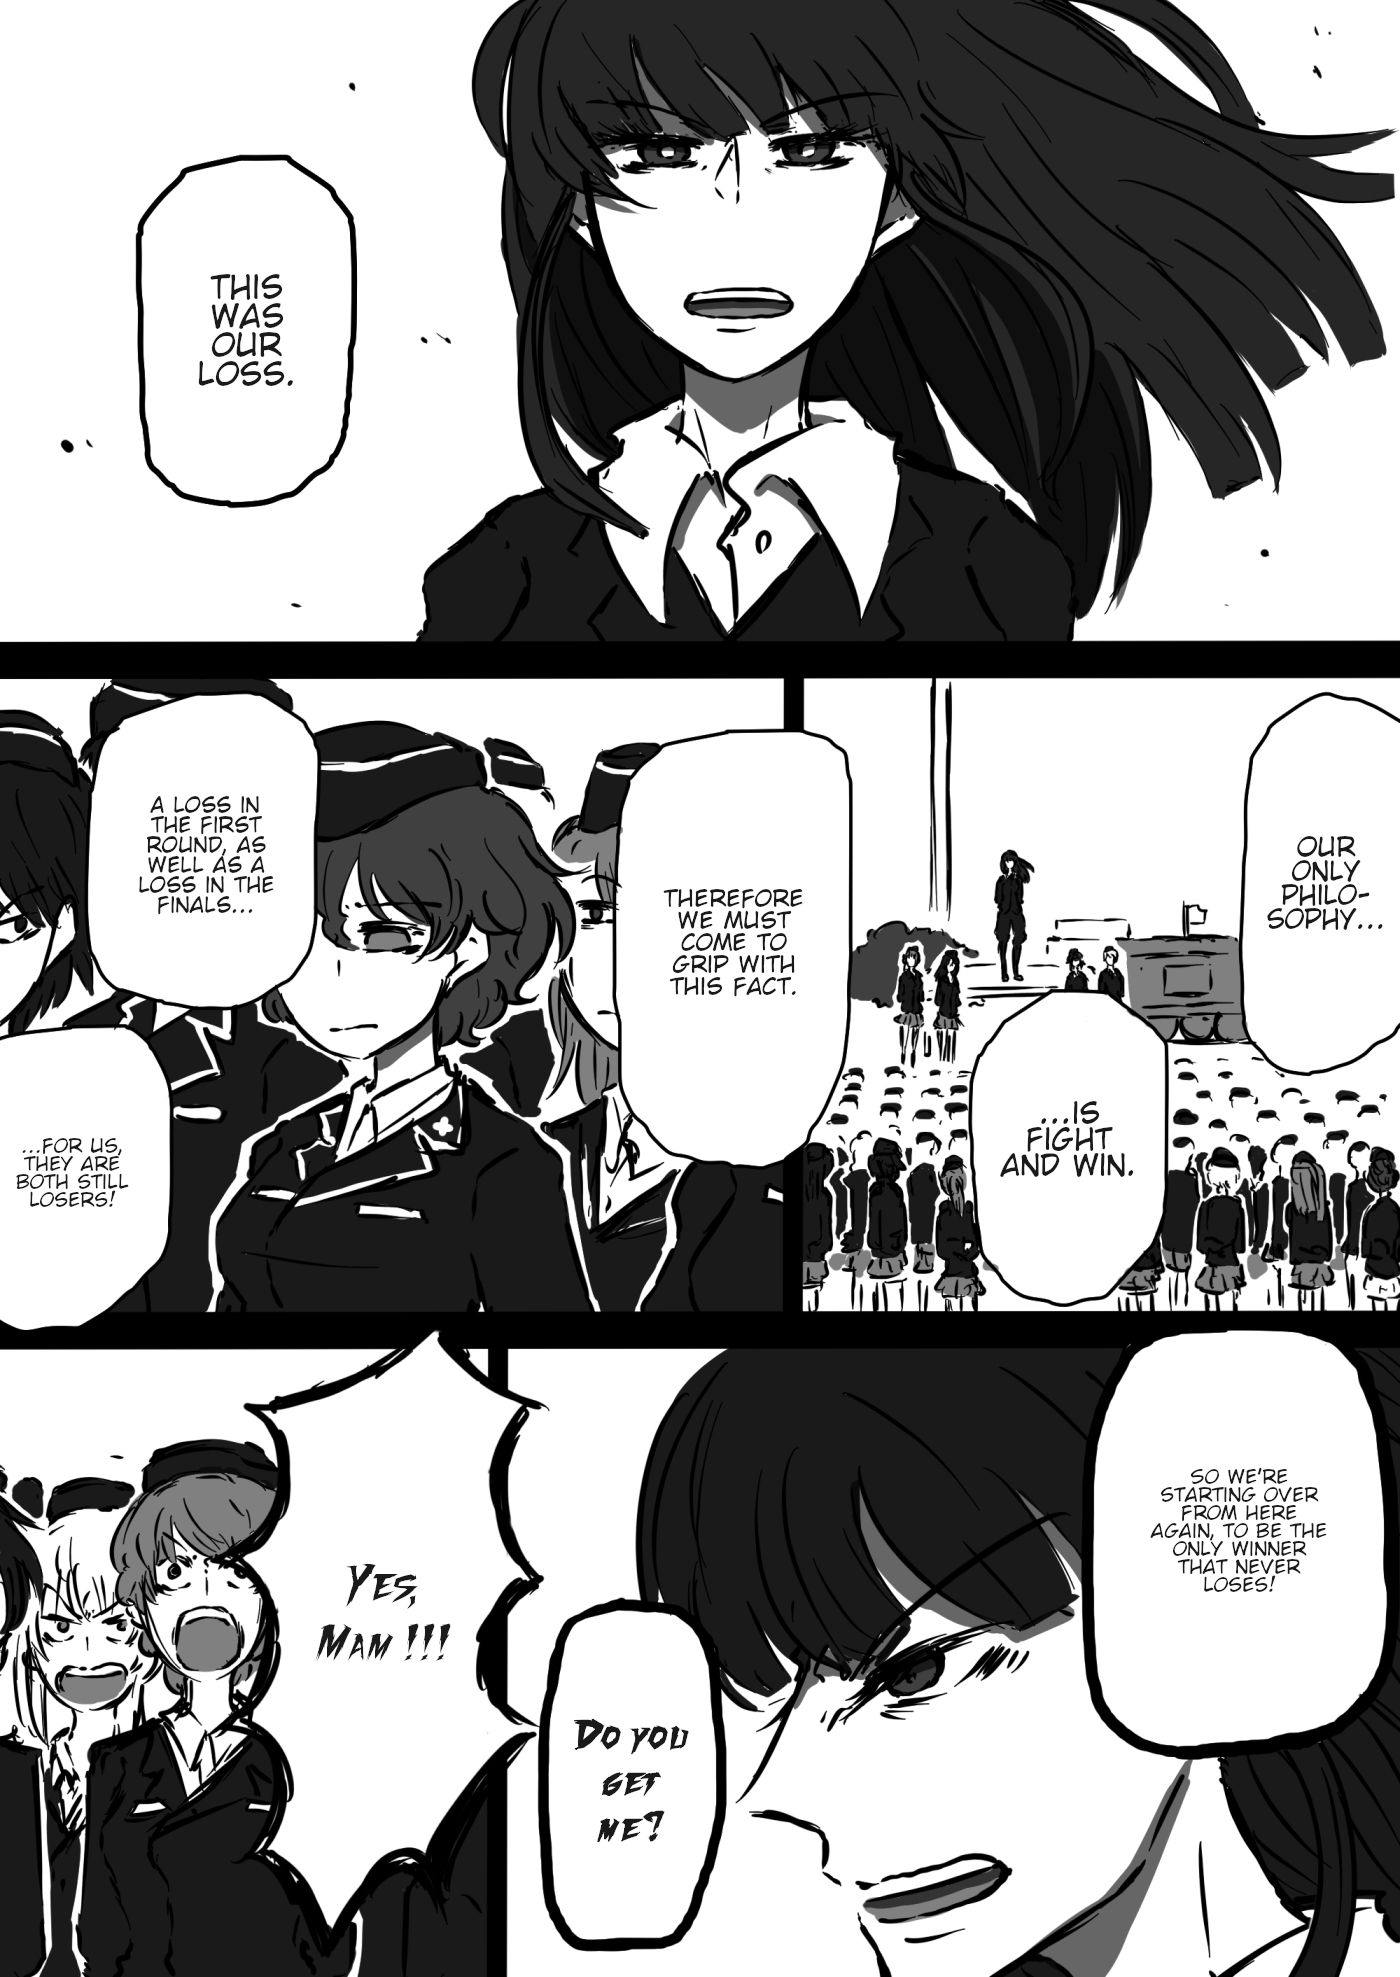 Girls und Panzer - Unofficial Story - Koume's Road - chapter 2 - #2